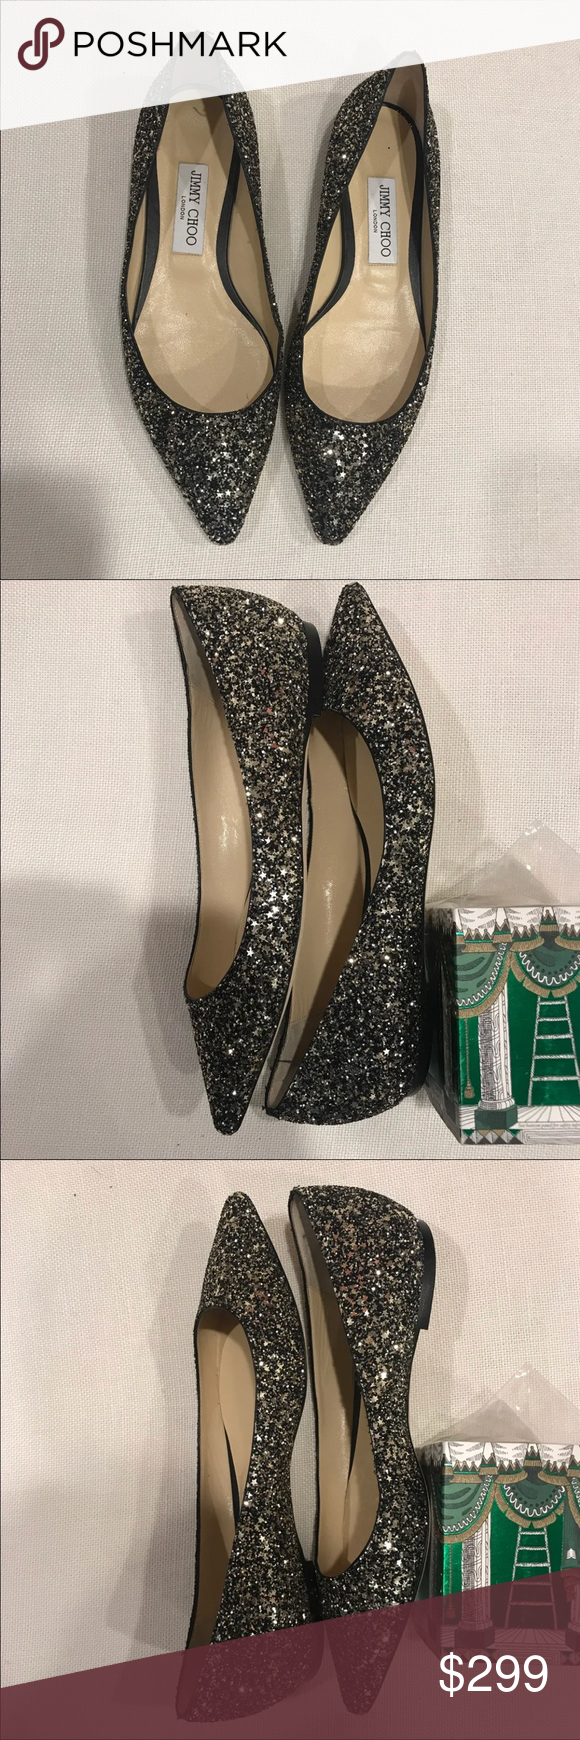 3c7bdf2a3e84 SALE Jimmy Choo Romy glitter flats -39 retail  650 PRICED TO SELL! Only  available